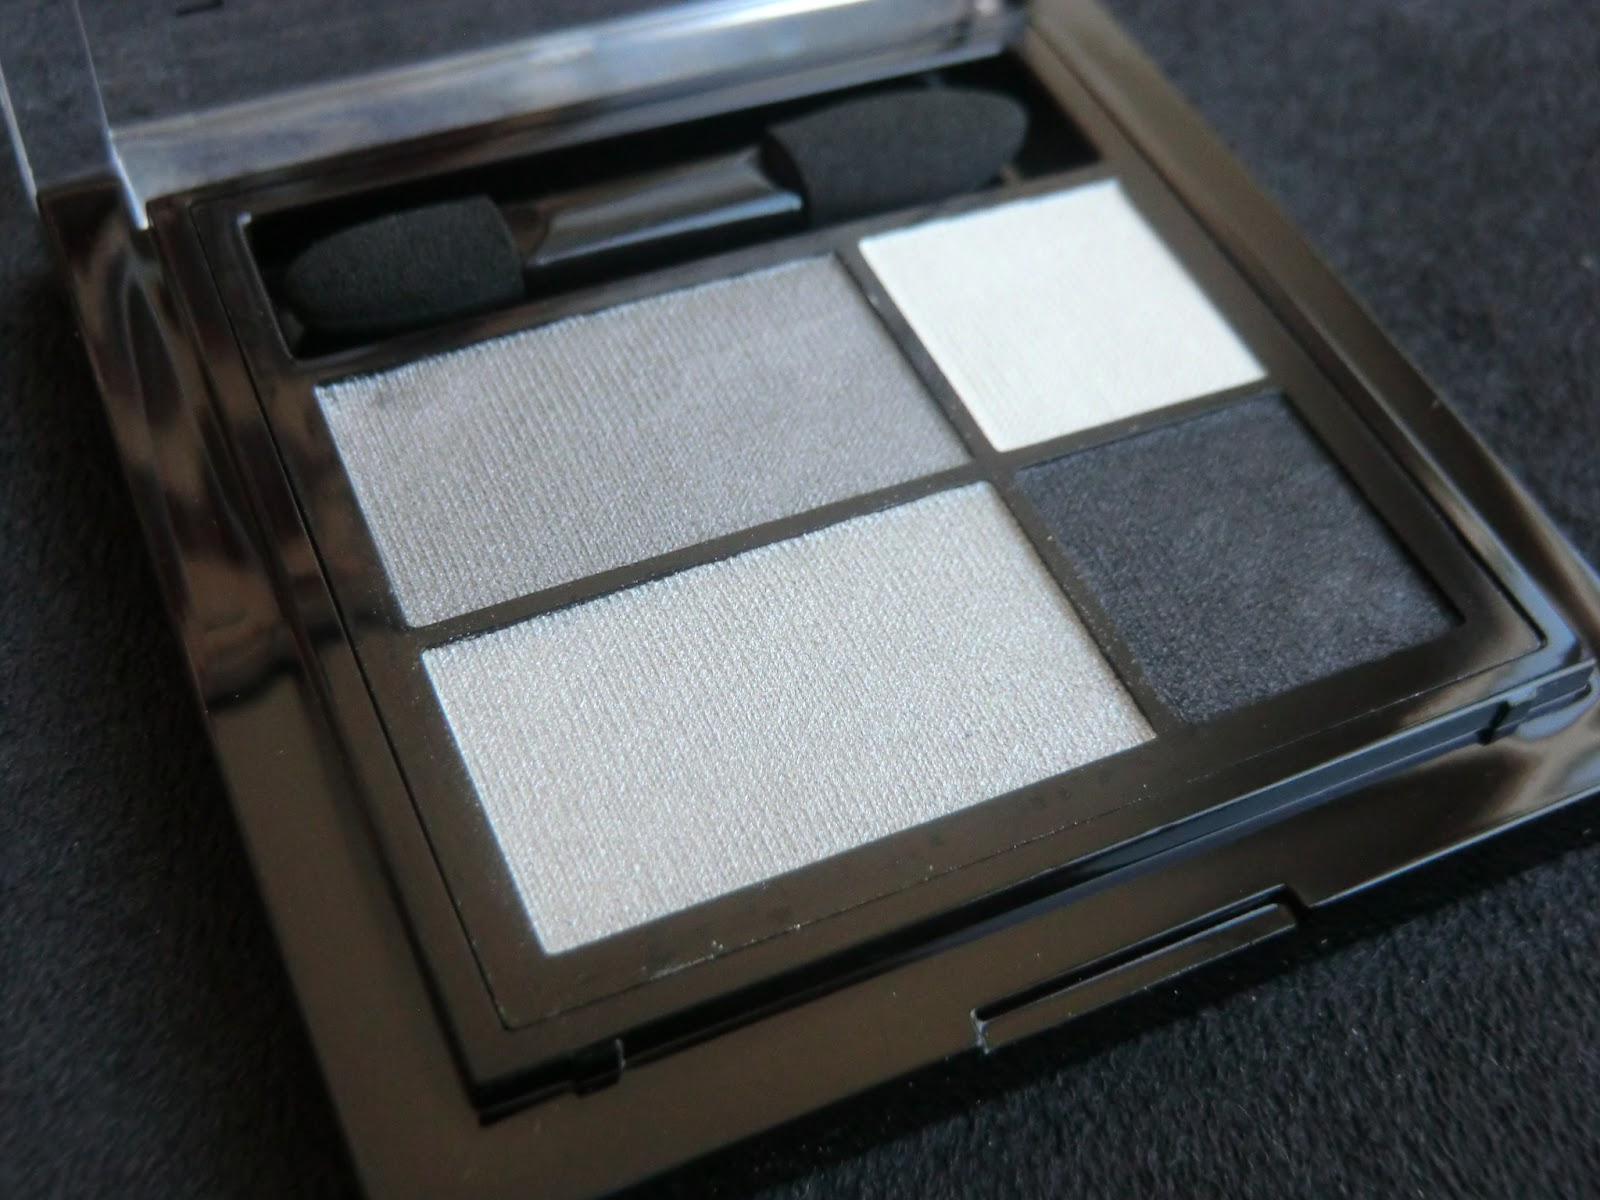 http://lenas-sofa.blogspot.de/2013/04/manhattan-eyemazing-effect-eyeshadow.html